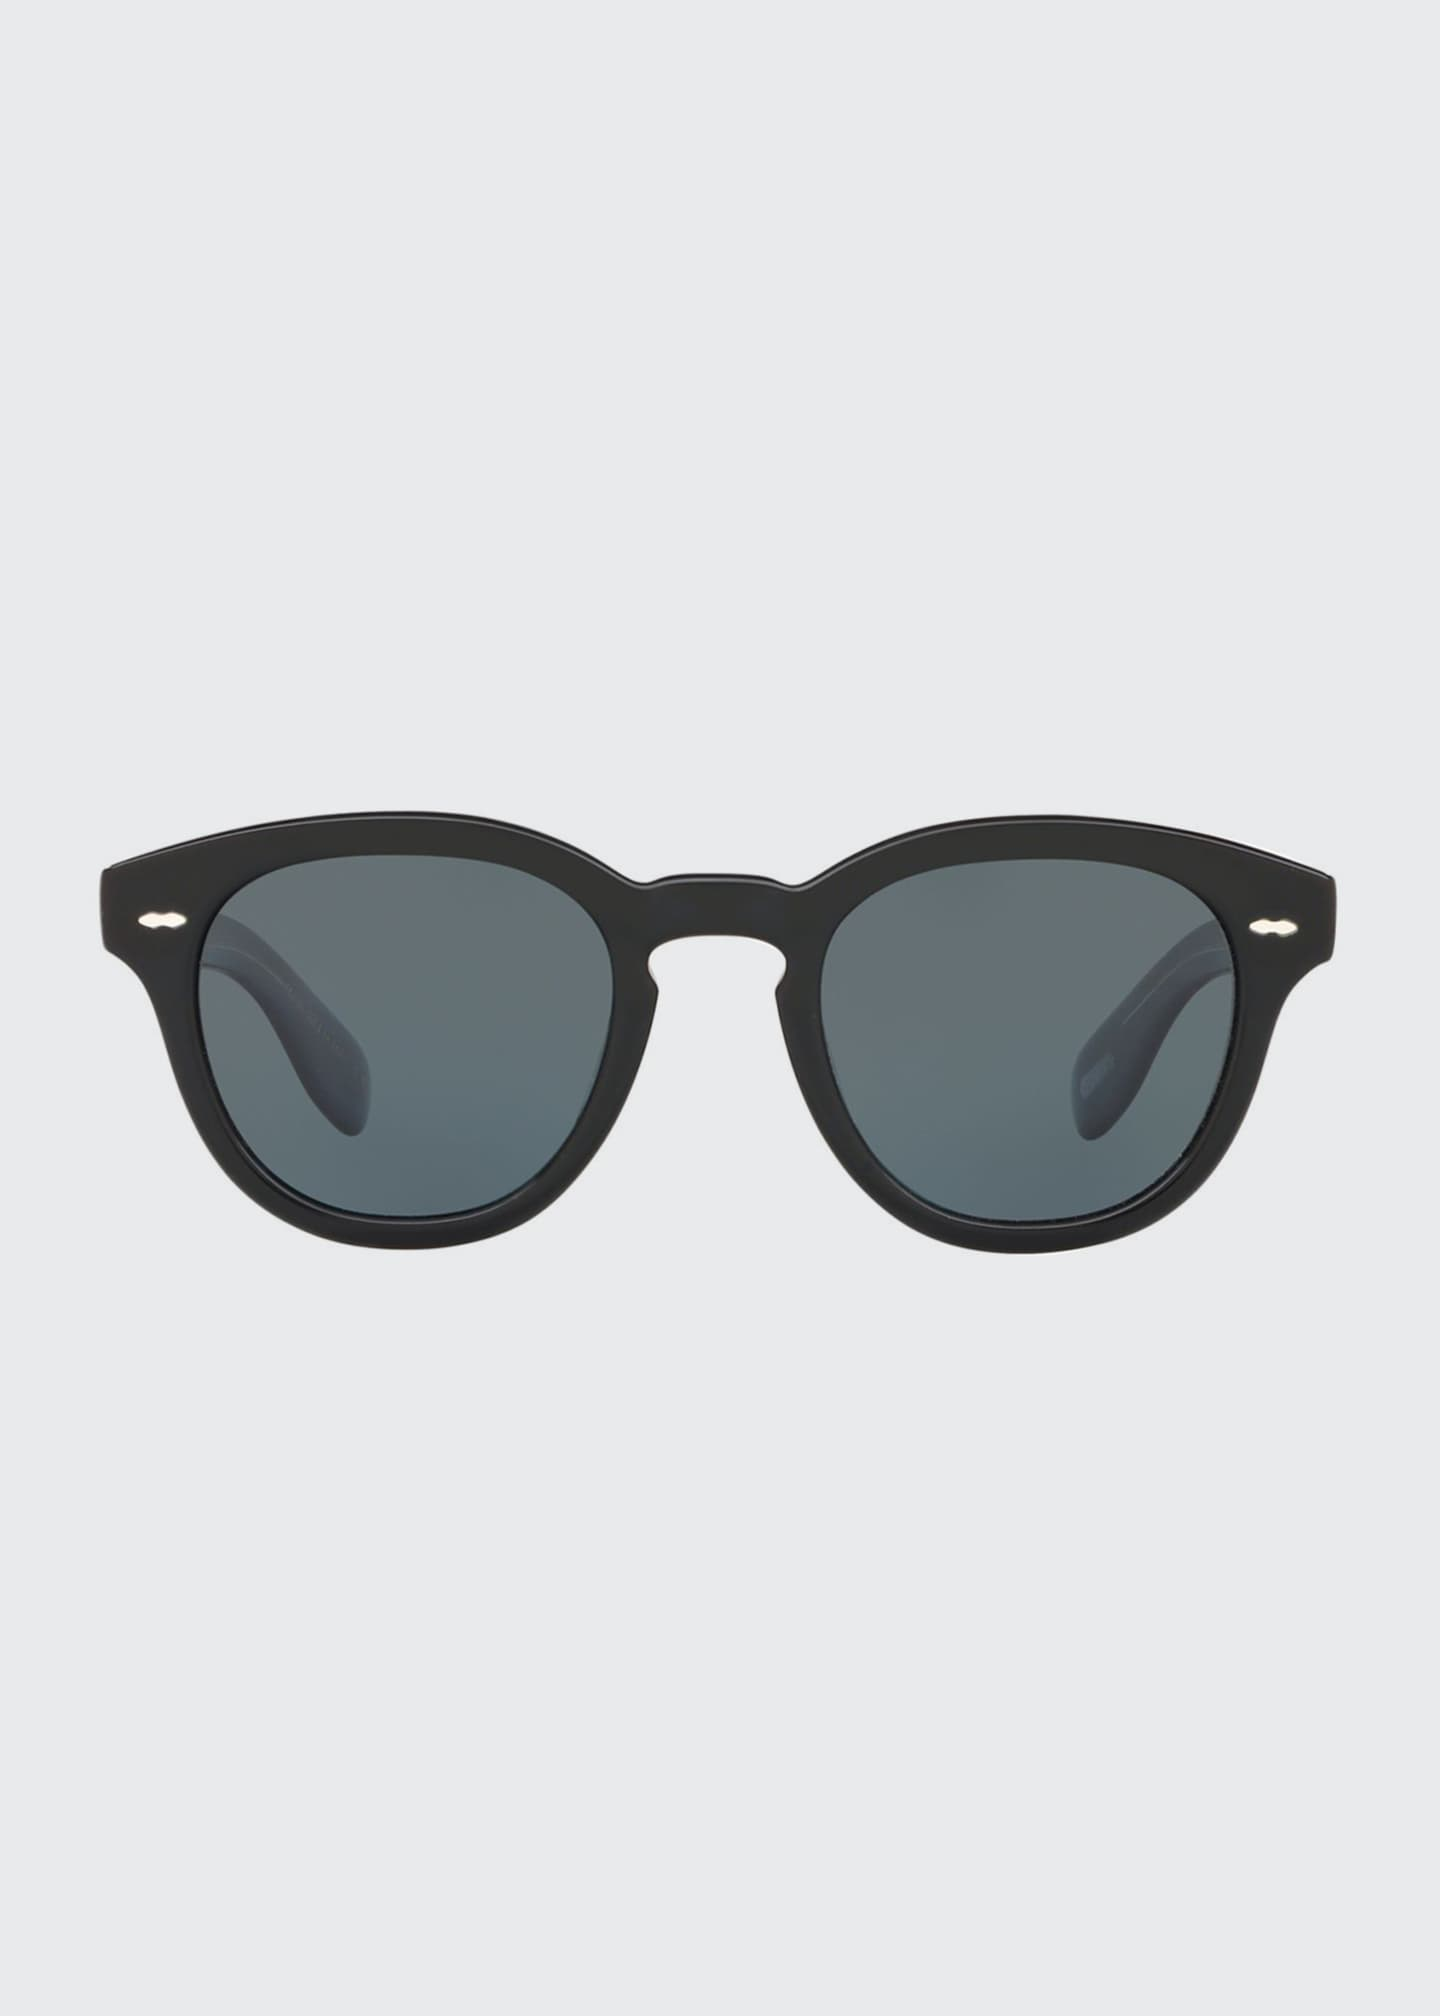 Image 2 of 2: Cary Grant Oval Acetate Sunglasses